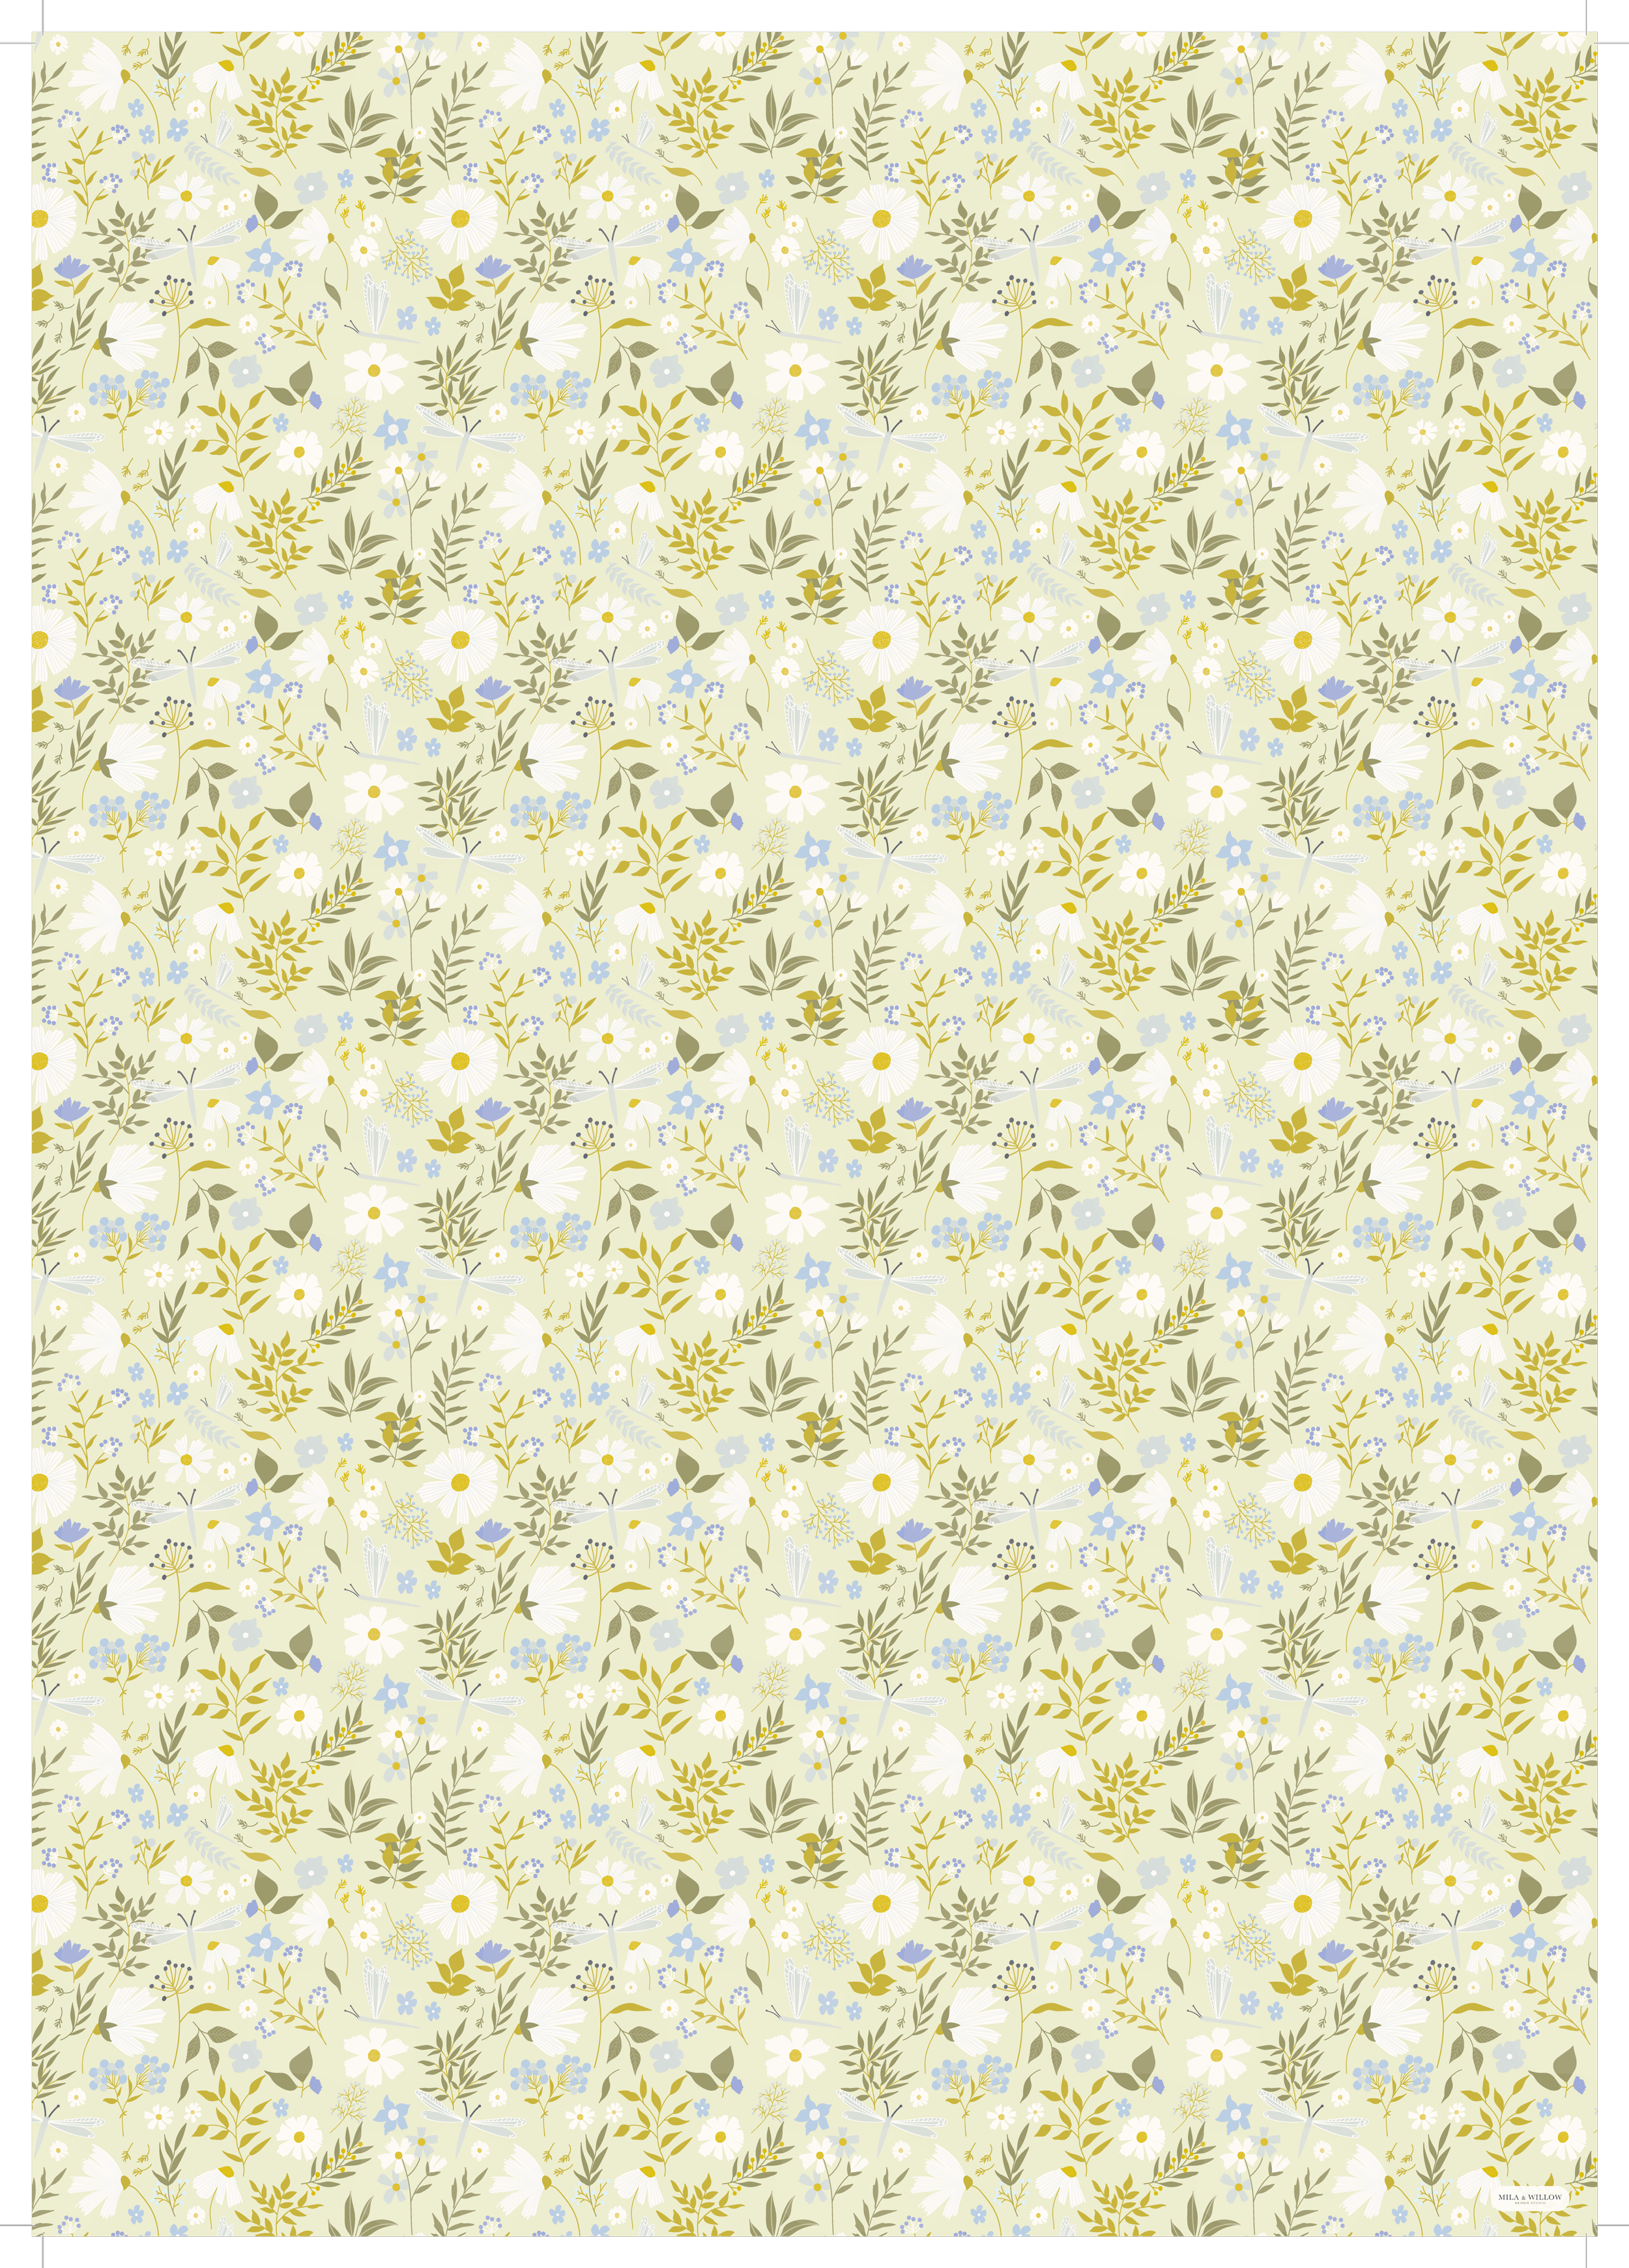 Illustrated wrapping paper with a lovely floral pattern with daisies and dragonflies on a pale green background.